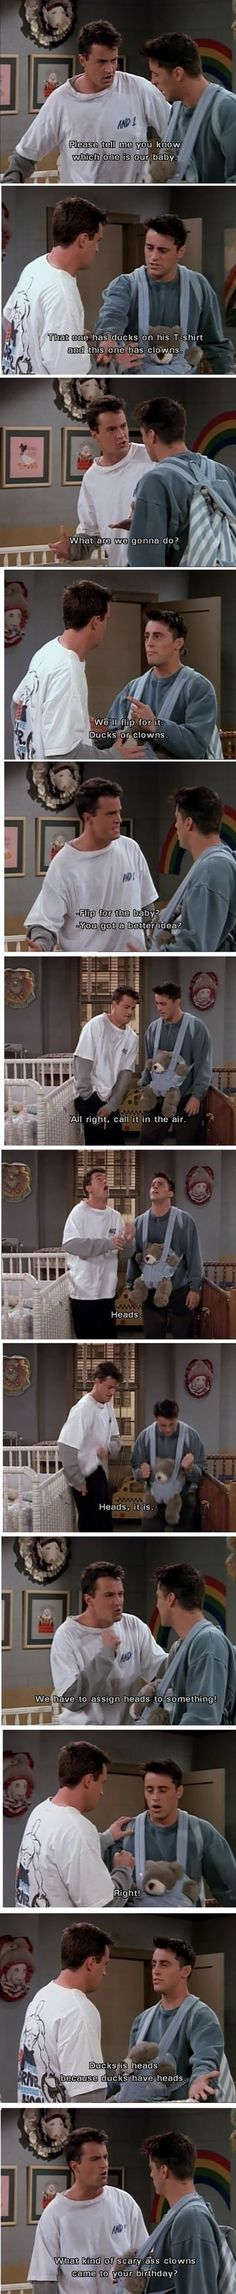 This is one of my all time favorite friends quotes !!  Friends Has Some Greatness Moments